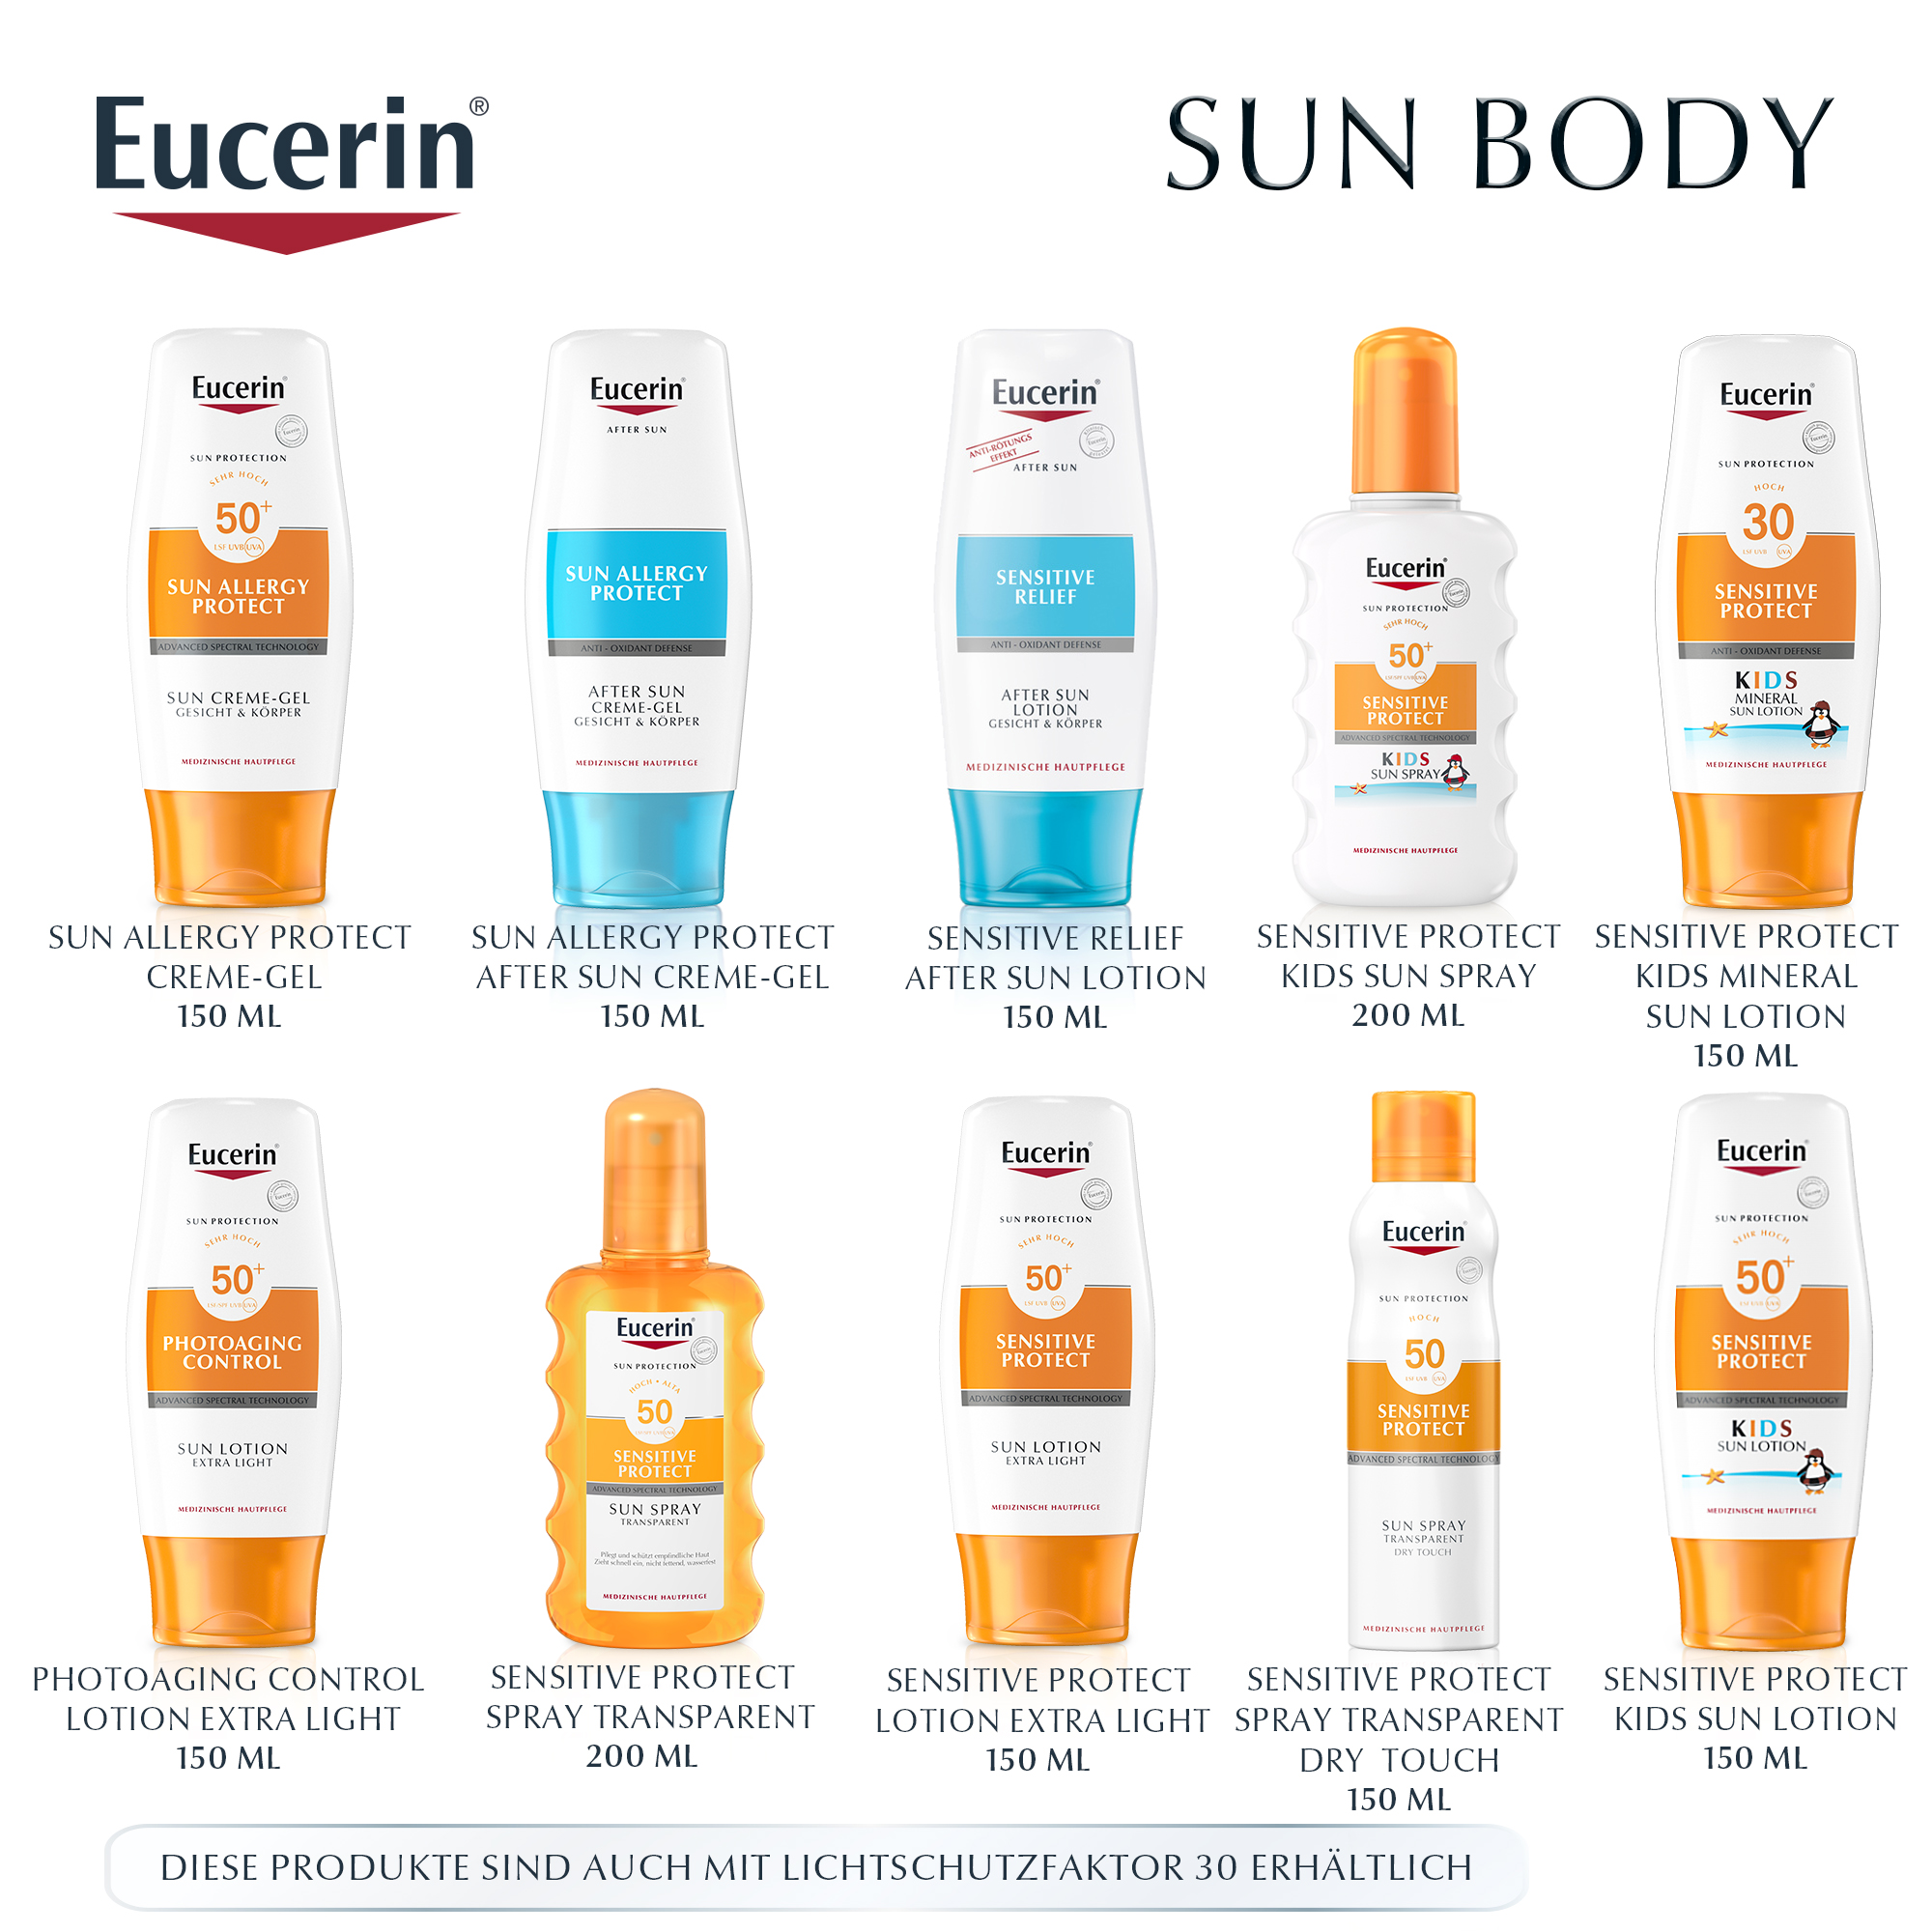 eucerin sonnen allergie schutz sun creme gel lsf 50. Black Bedroom Furniture Sets. Home Design Ideas